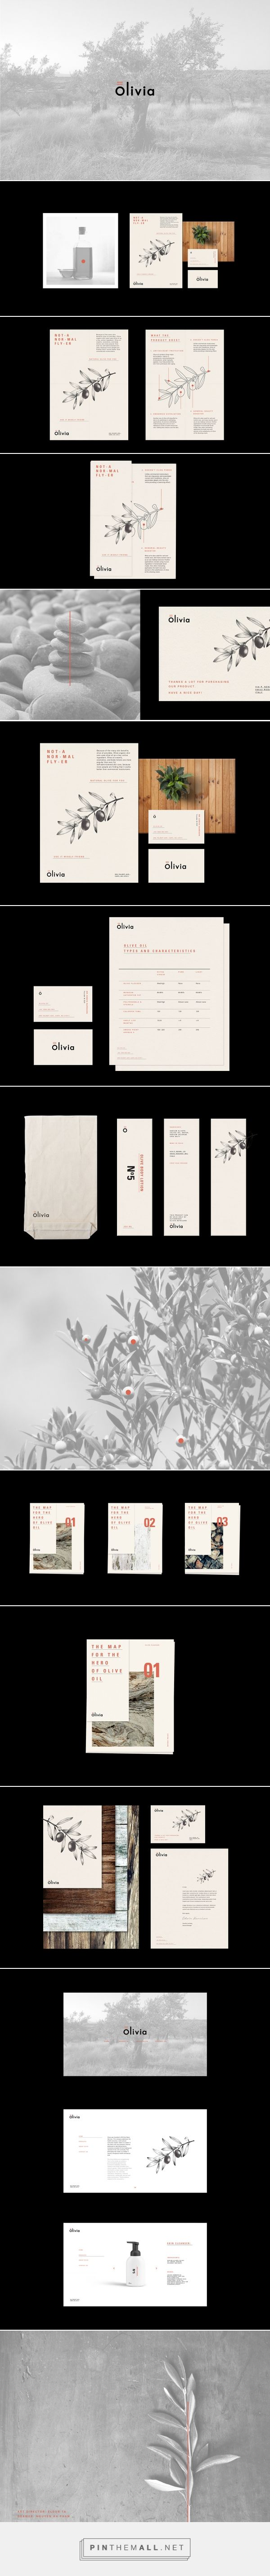 Olivia Natural Skincare Company Branding by Eldur Ta | Fivestar Branding Agency – Design and Branding Agency & Curated Inspiration Gallery  #skincare #skincarebranding #branding #design #designinspiration